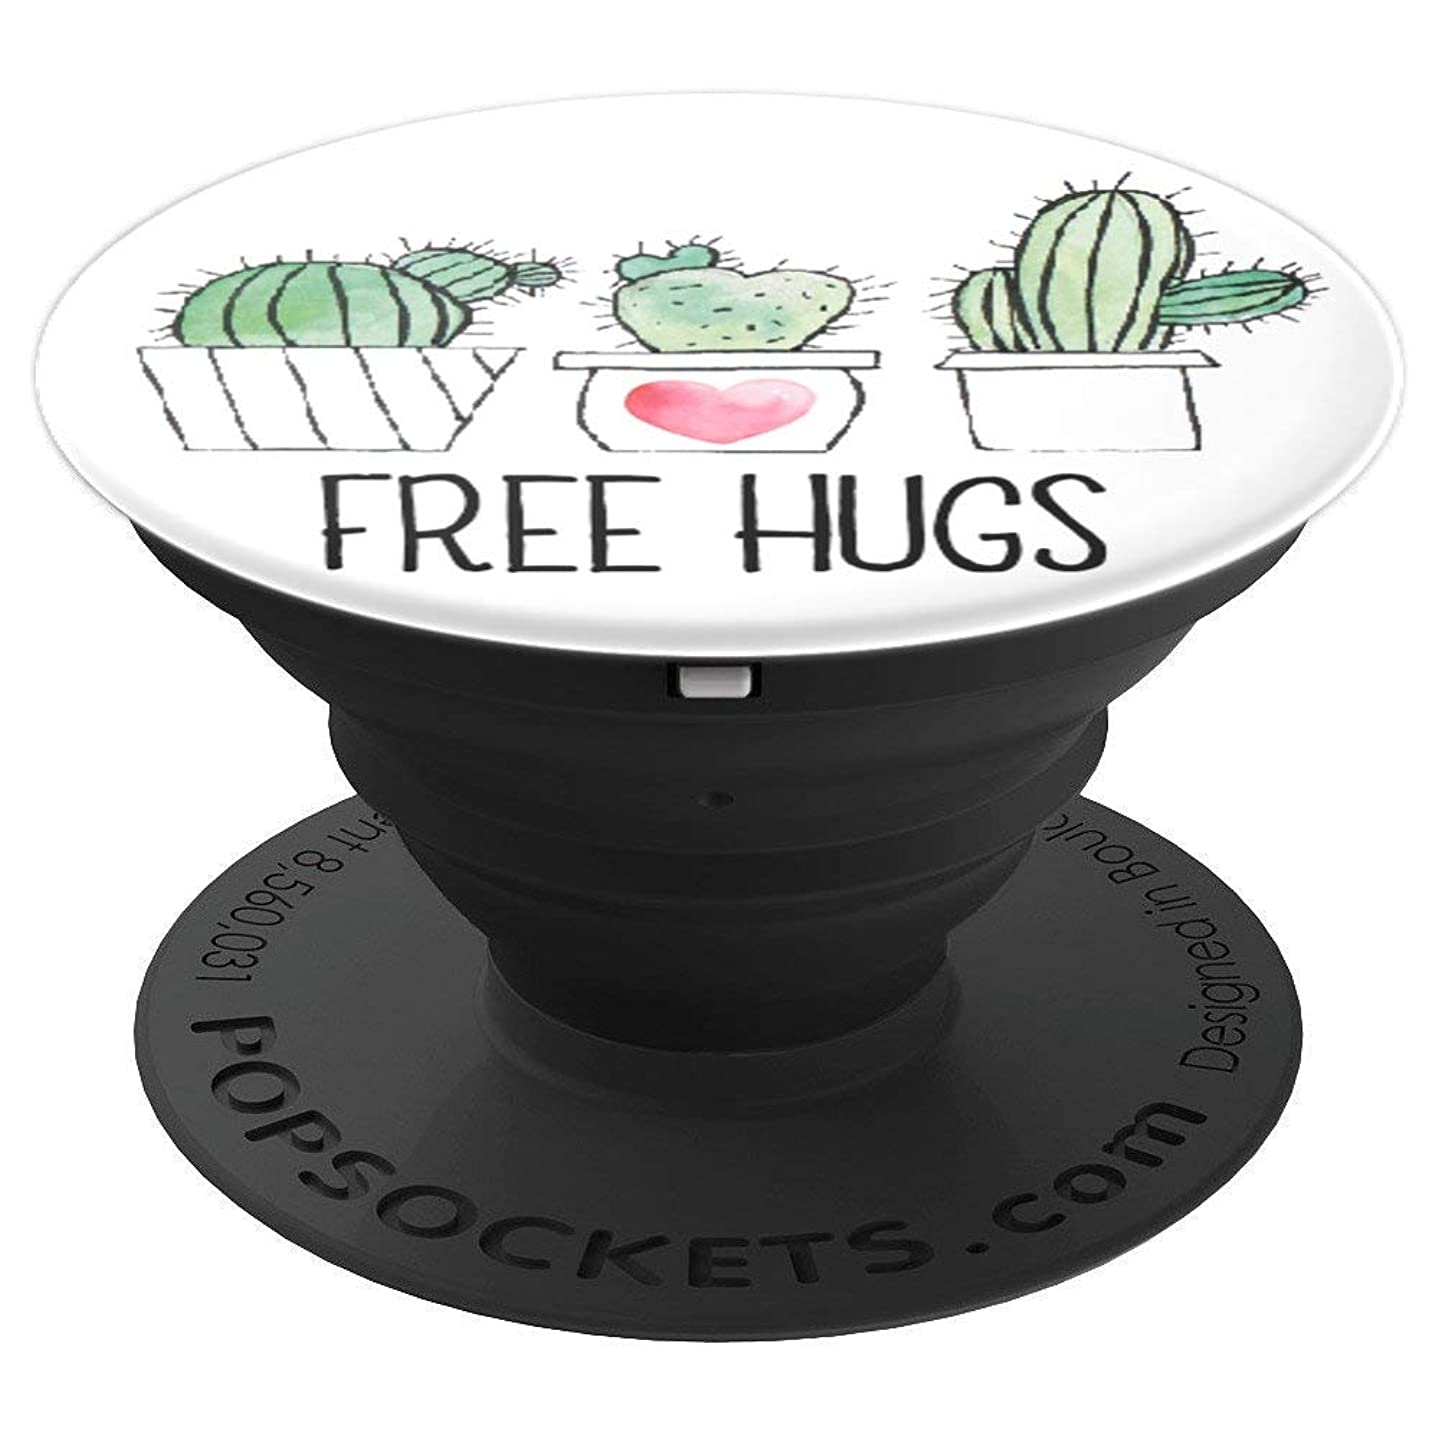 Free Hugs Succulent Cactus - PopSockets Grip and Stand for Phones and Tablets